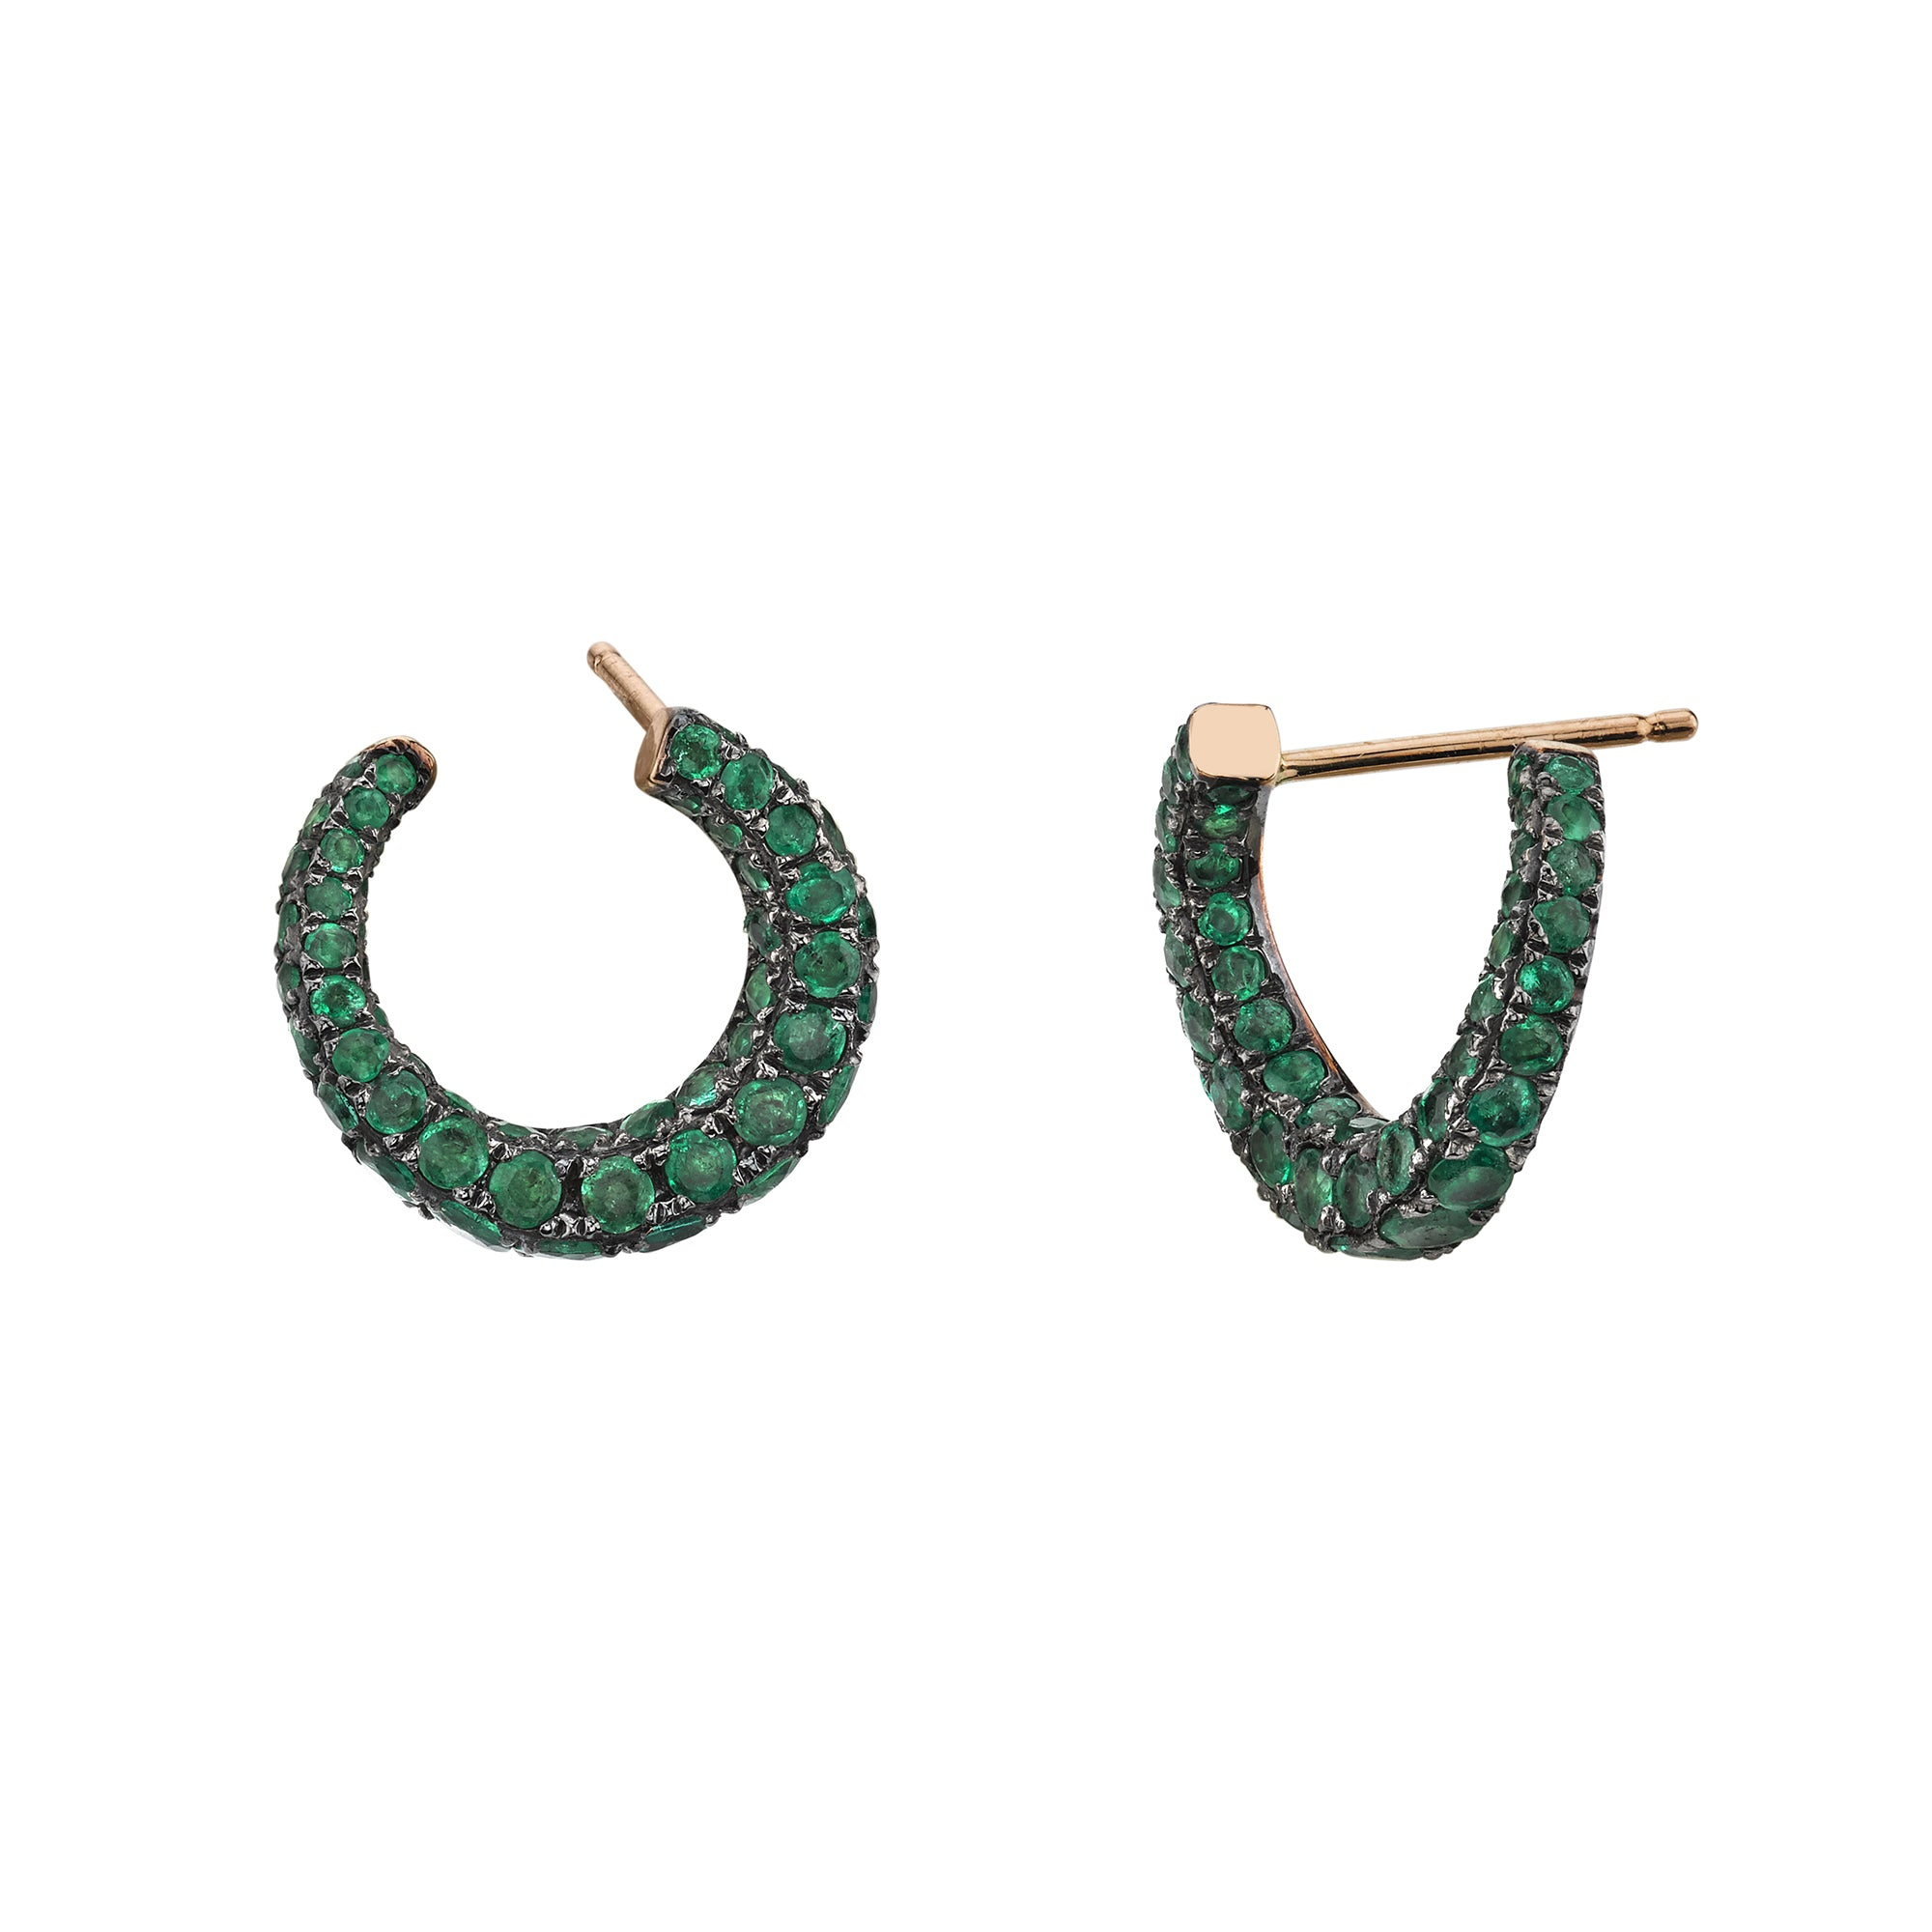 Emerald Curl Huggies by Shay for Broken English Jewelry